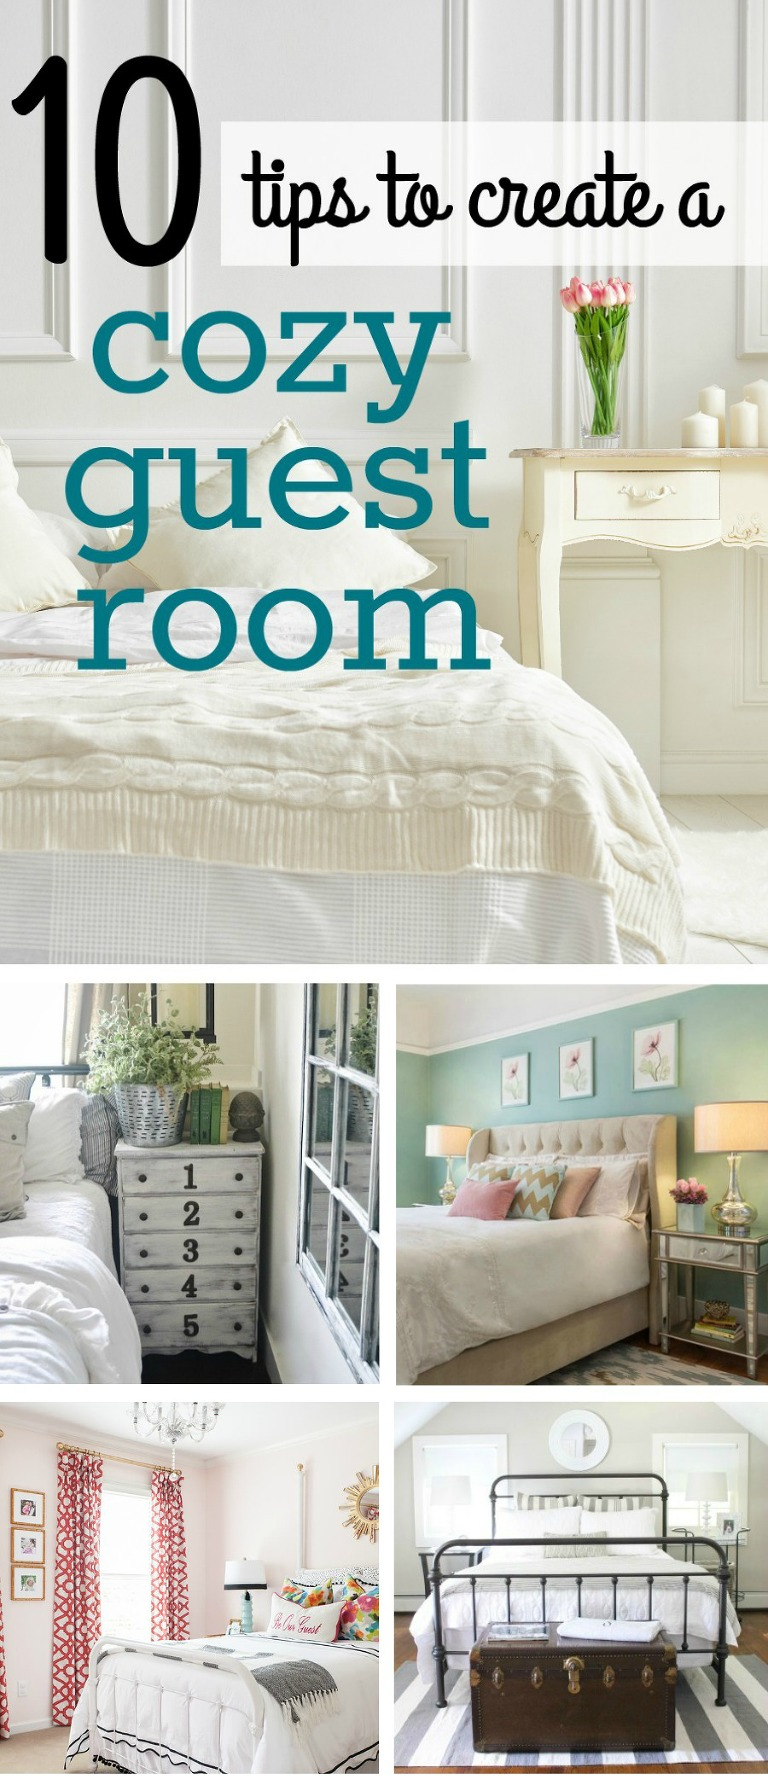 10 tips to create a cozy guest room